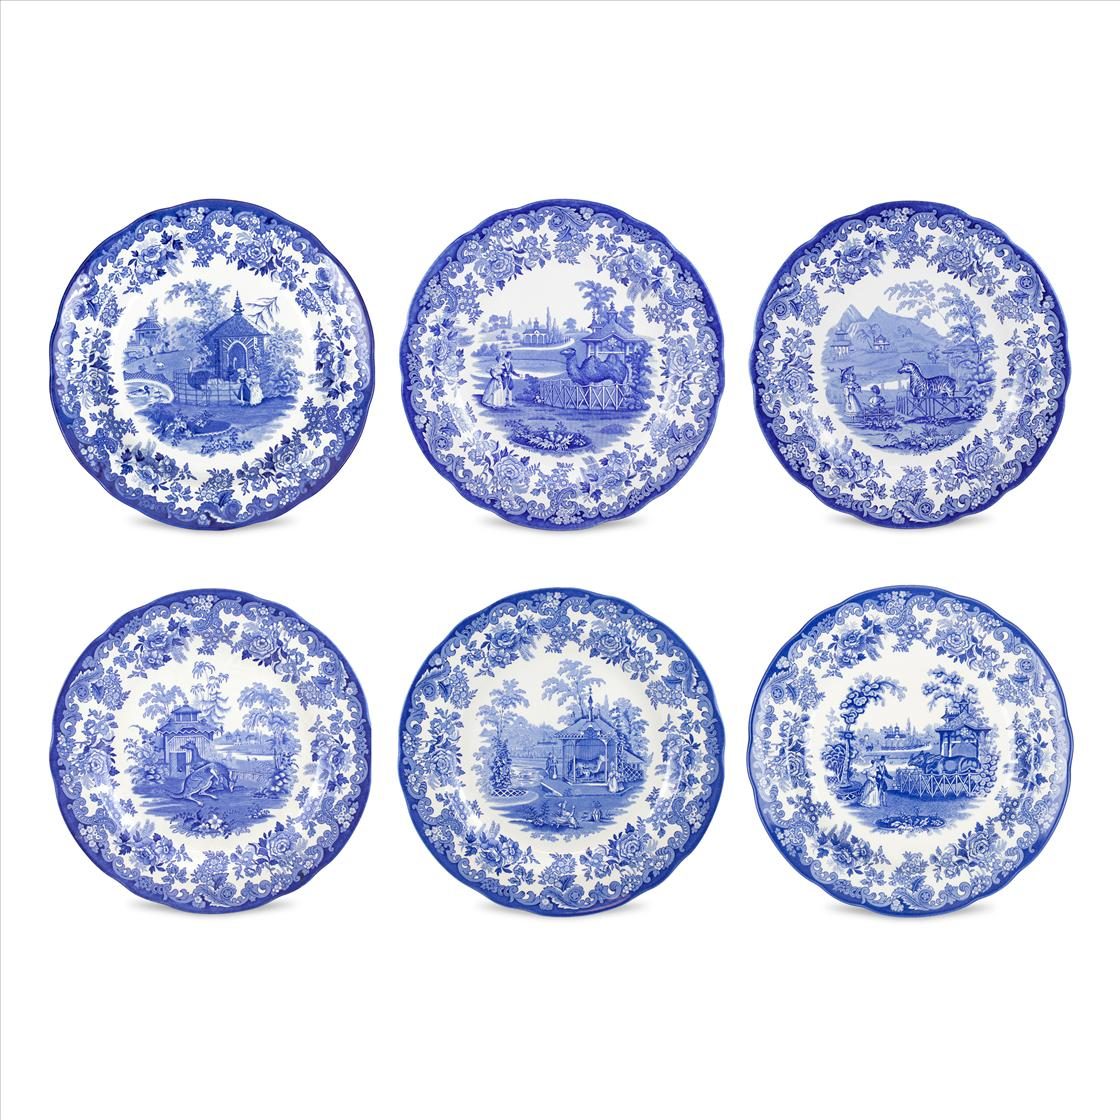 Spode Blue Room Set of 6 Zoological Plates image number 0